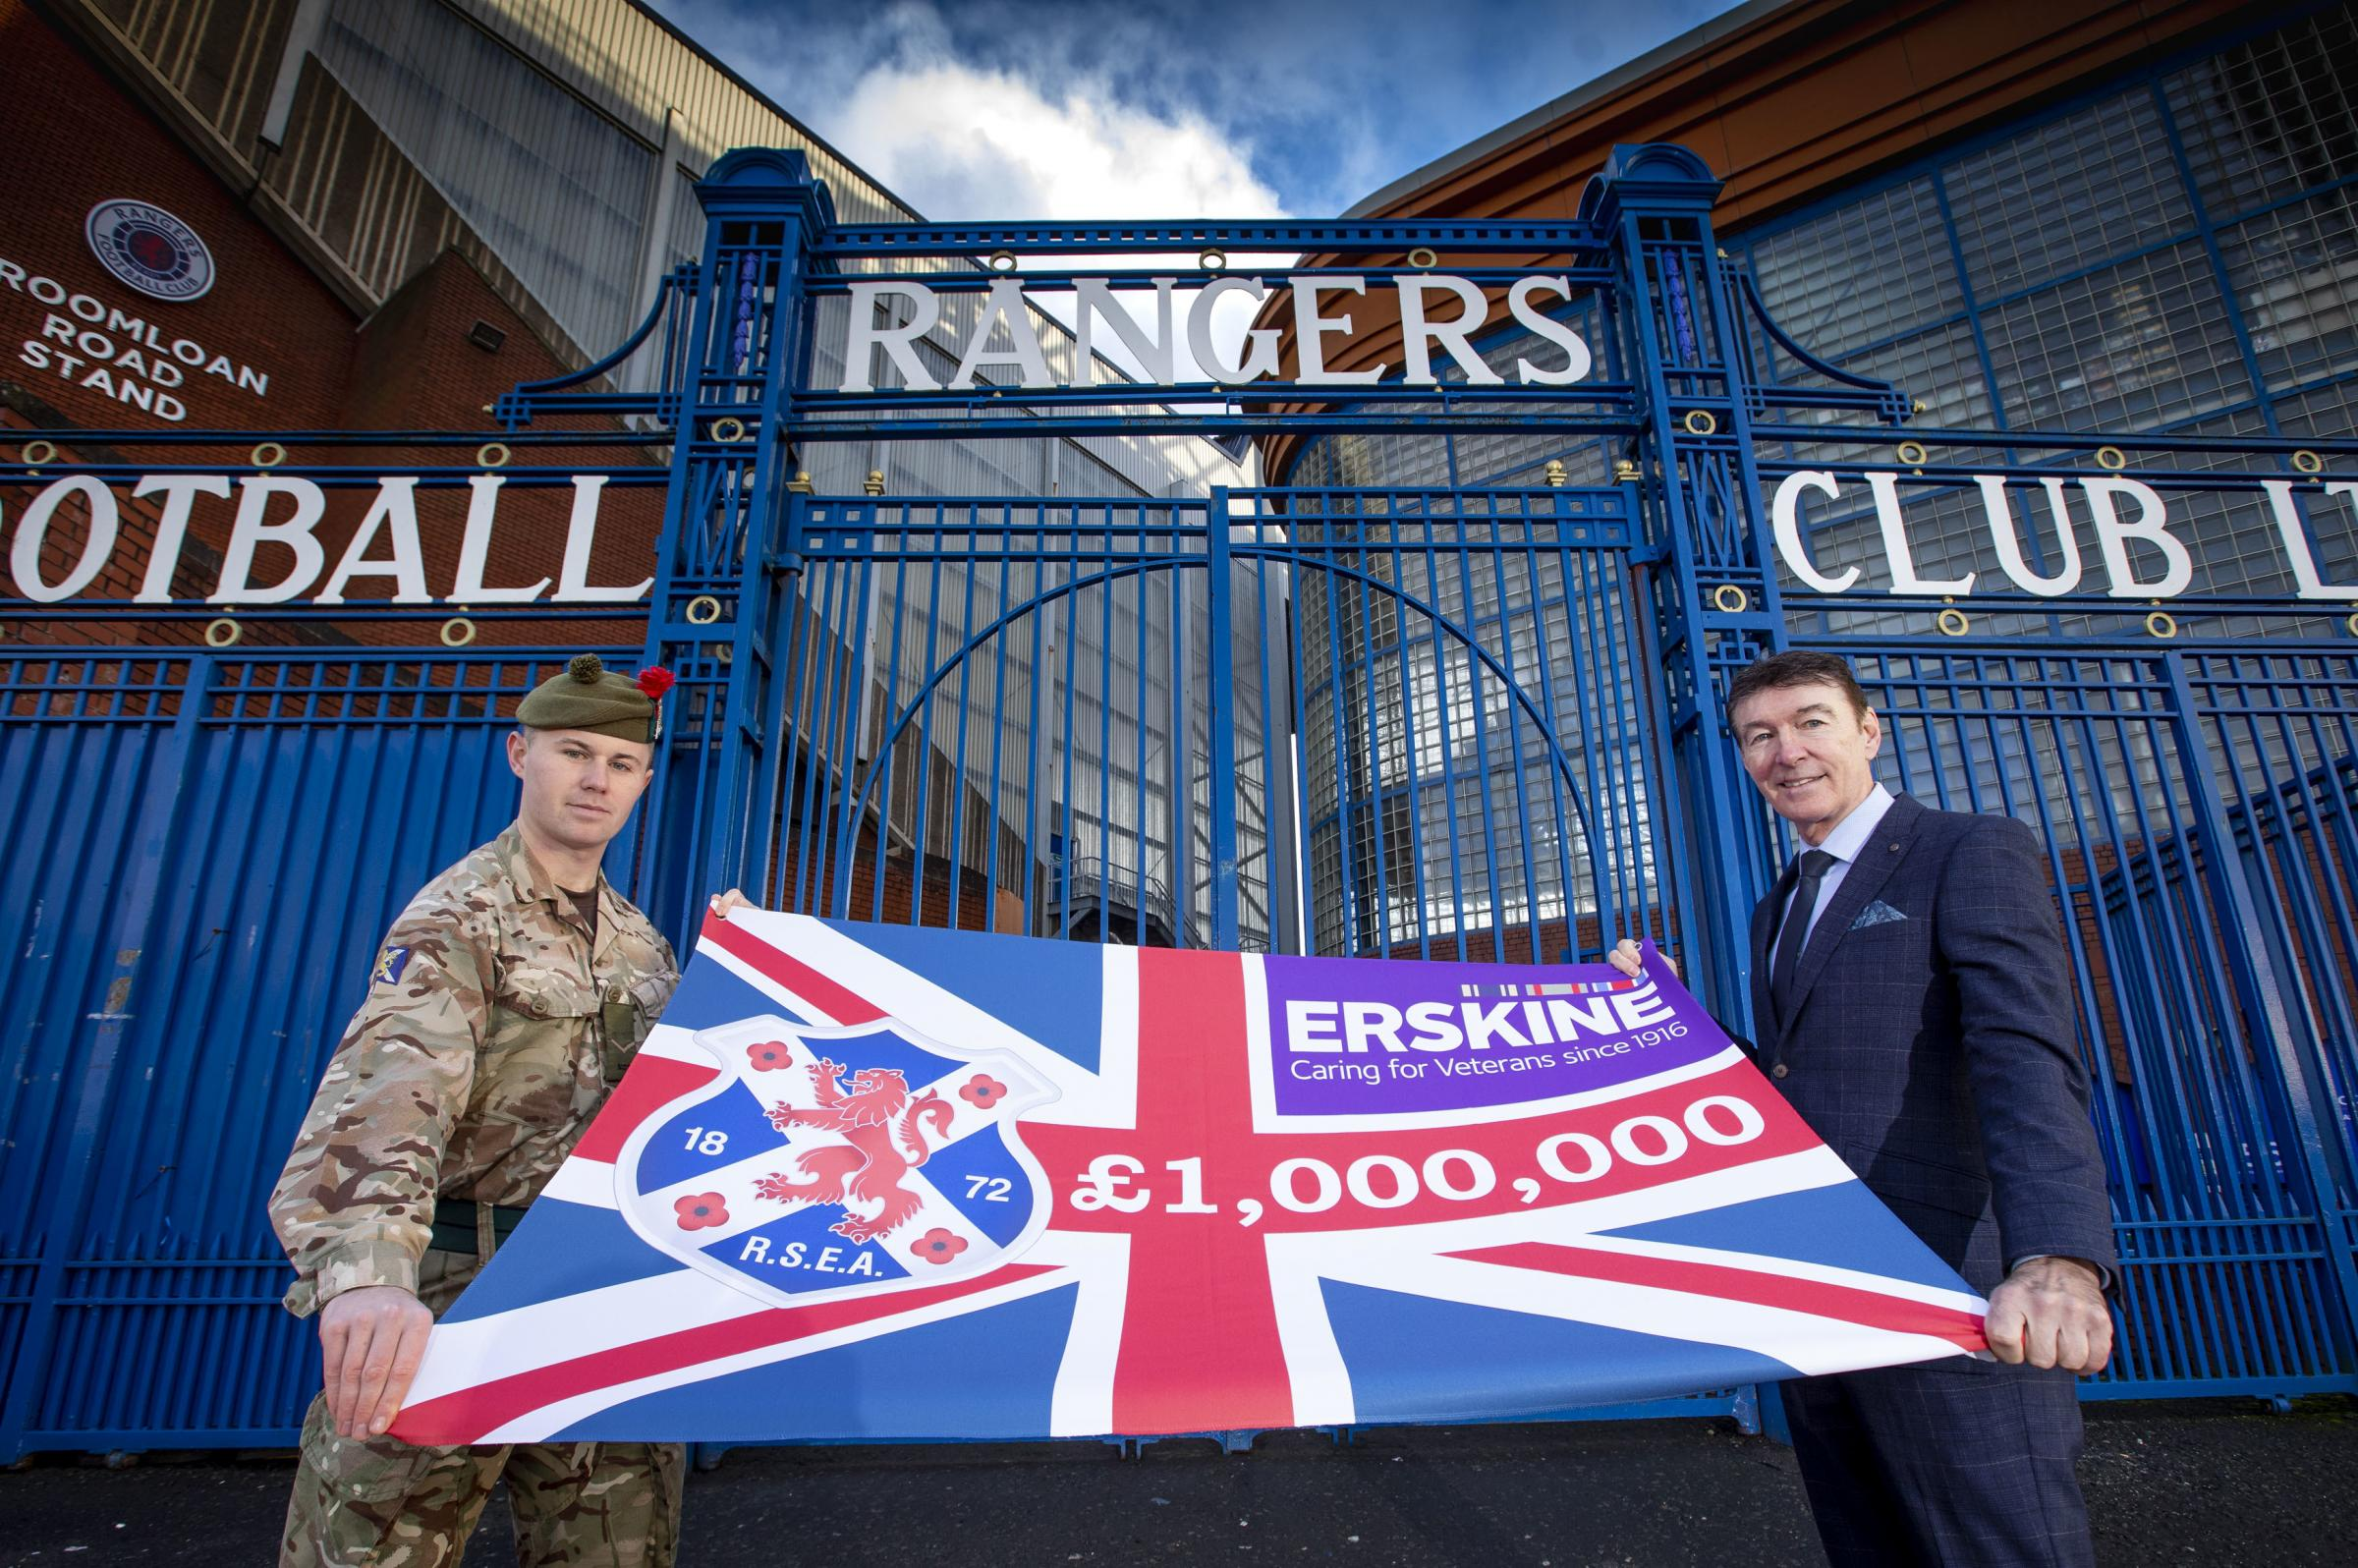 Gordon Smith pays tribute to veterans and Rangers support as RSEA hits £1million mark